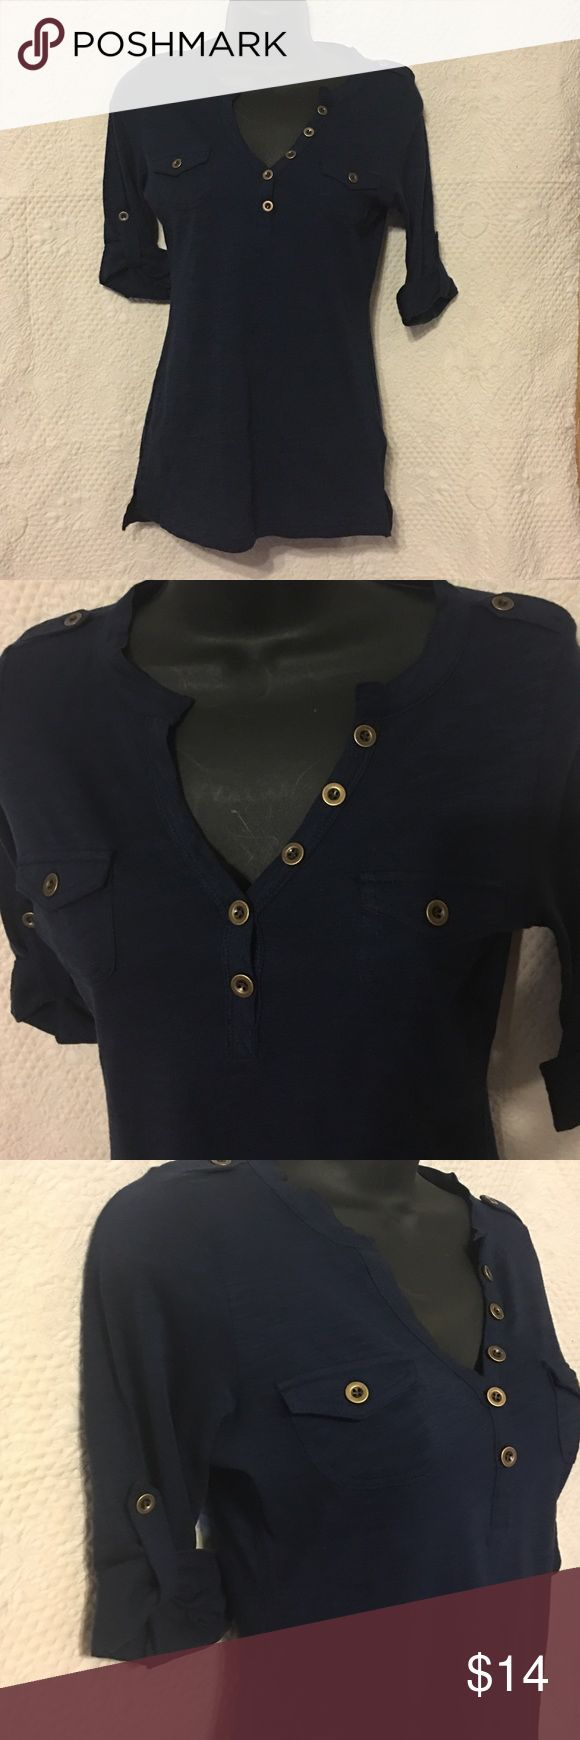 Level Up , brass buttons, roll up sleeves tee NWOT LevelUp tee roll up sleeves brass buttons. New without tags Tops Tees - Short Sleeve